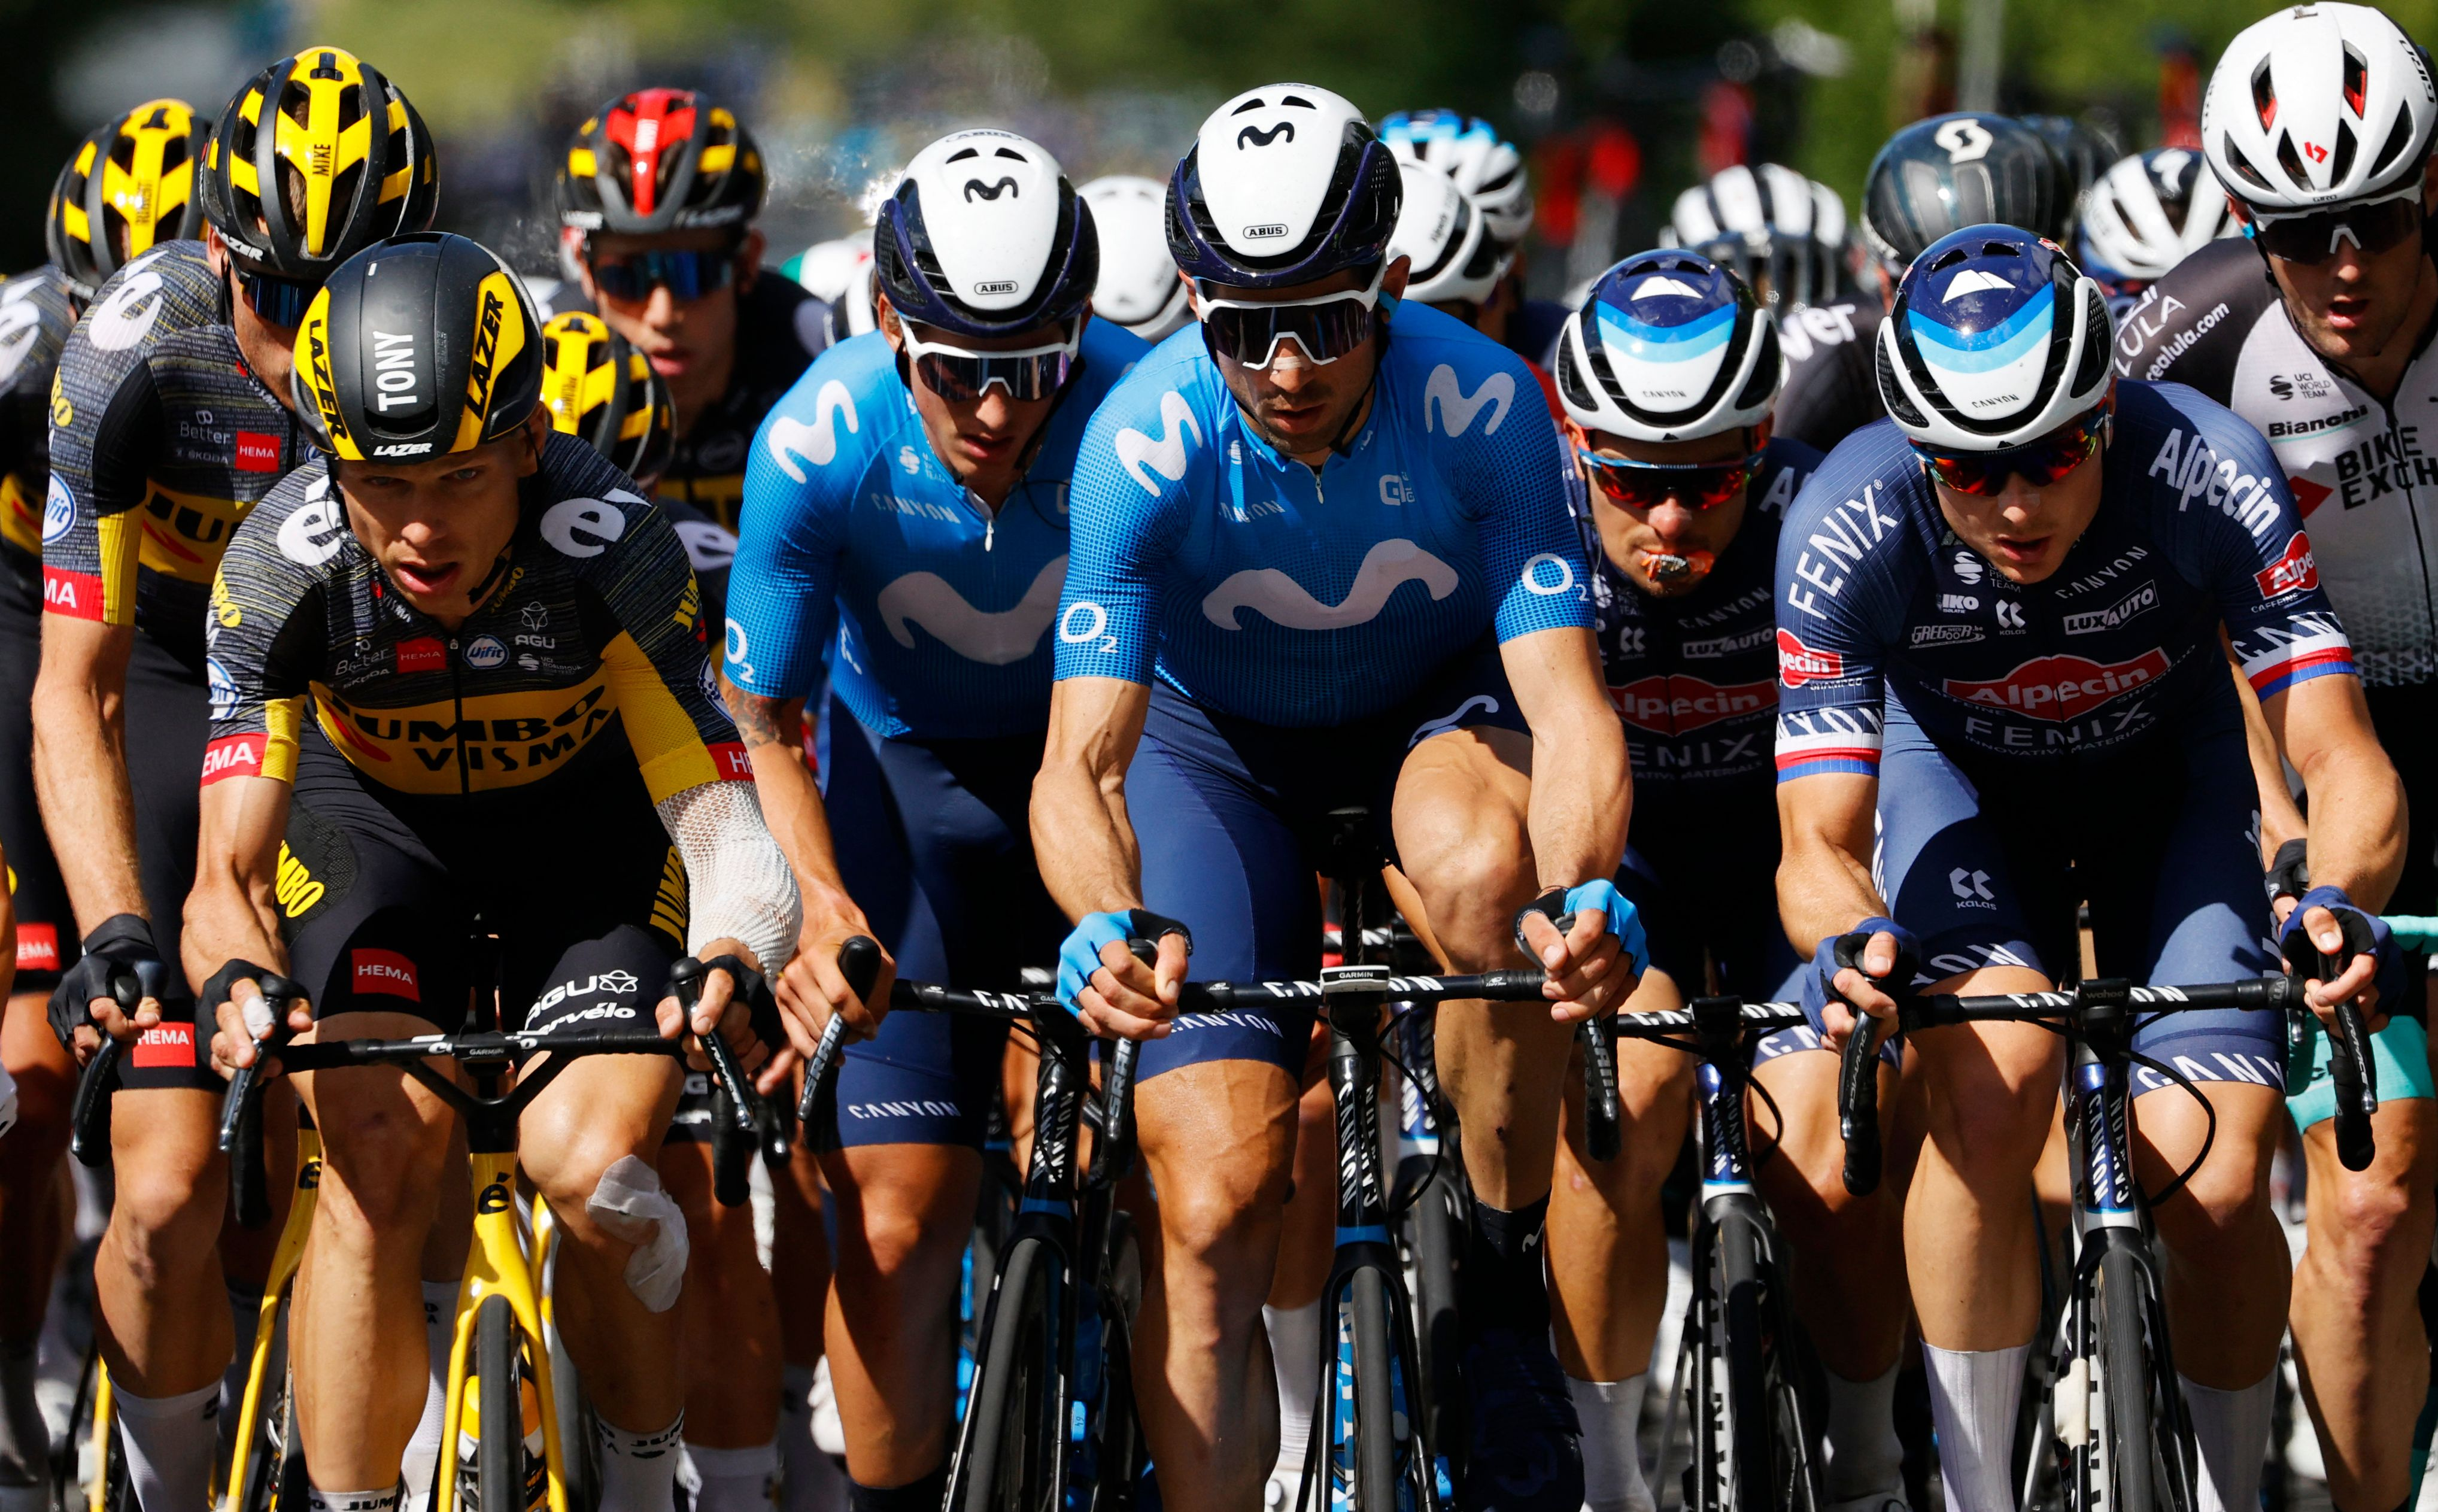 Report: Woman Arrested for Causing Tony Martin, Riders to Crash at Tour de France